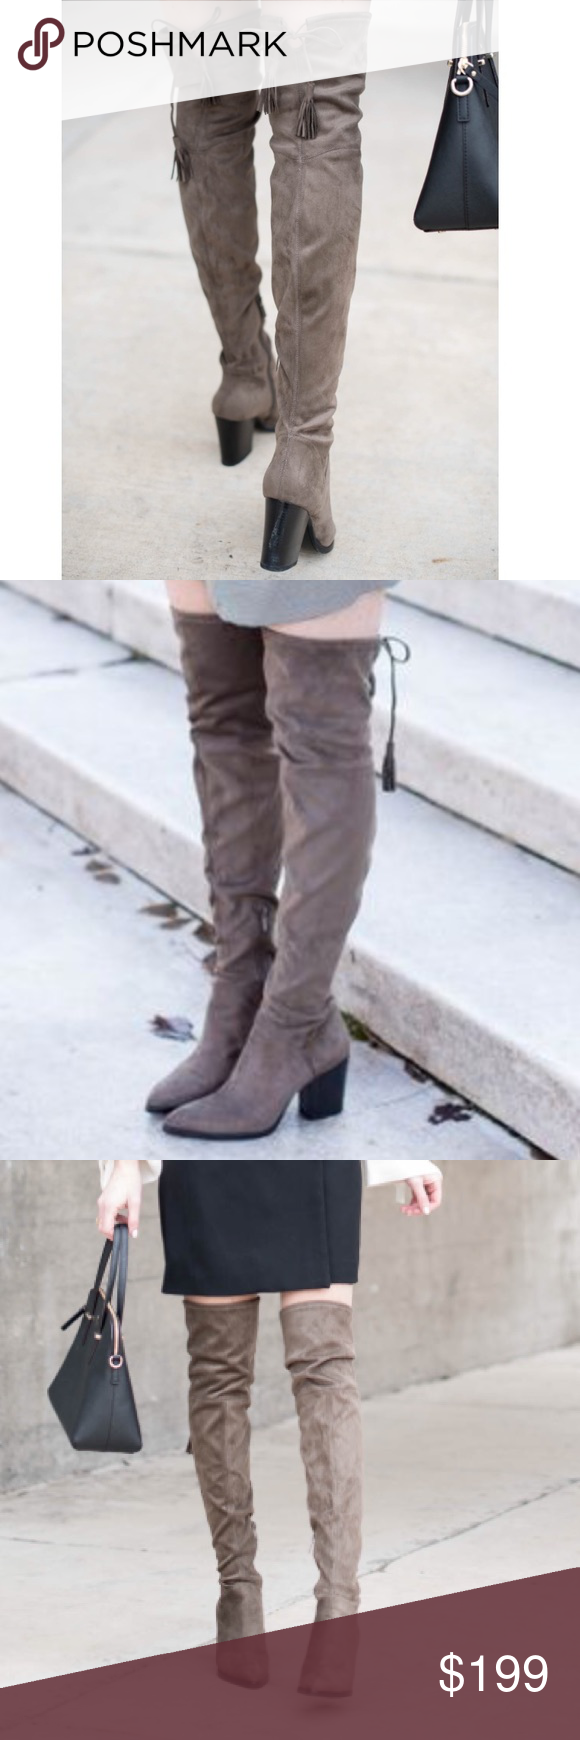 5bf85908dca Spotted while shopping on Poshmark  Marc Fisher Gray Suede Alinda Over the Knee  Boots!  poshmark  fashion  shopping  style  Marc Fisher  Shoes